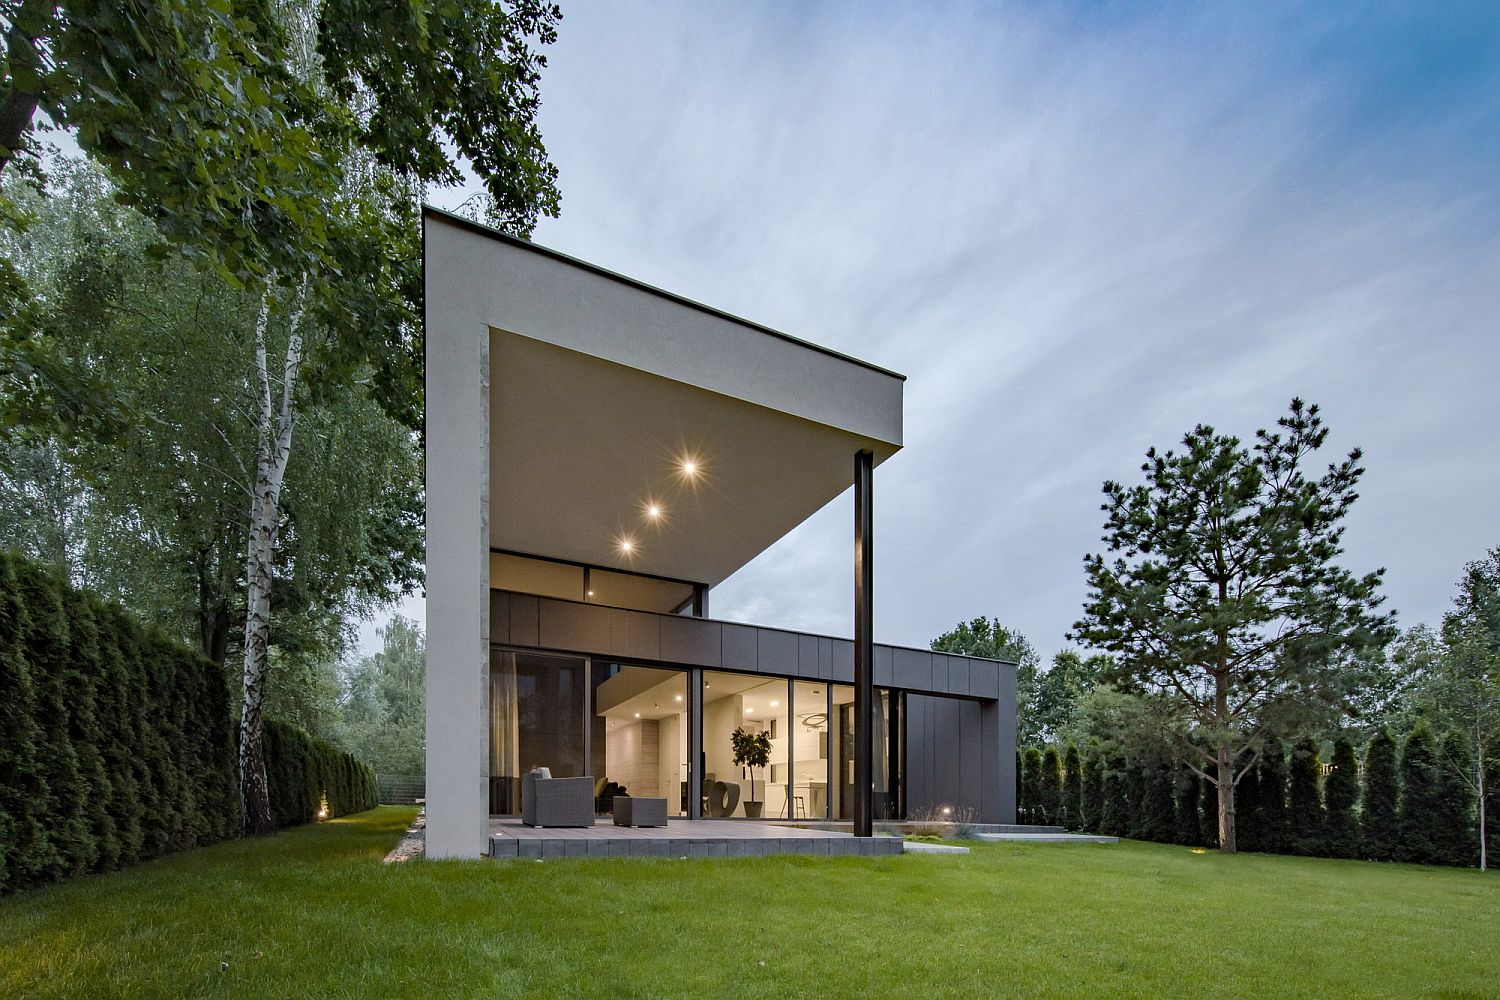 Gray and elegant exterior of the home along with a lovely garden